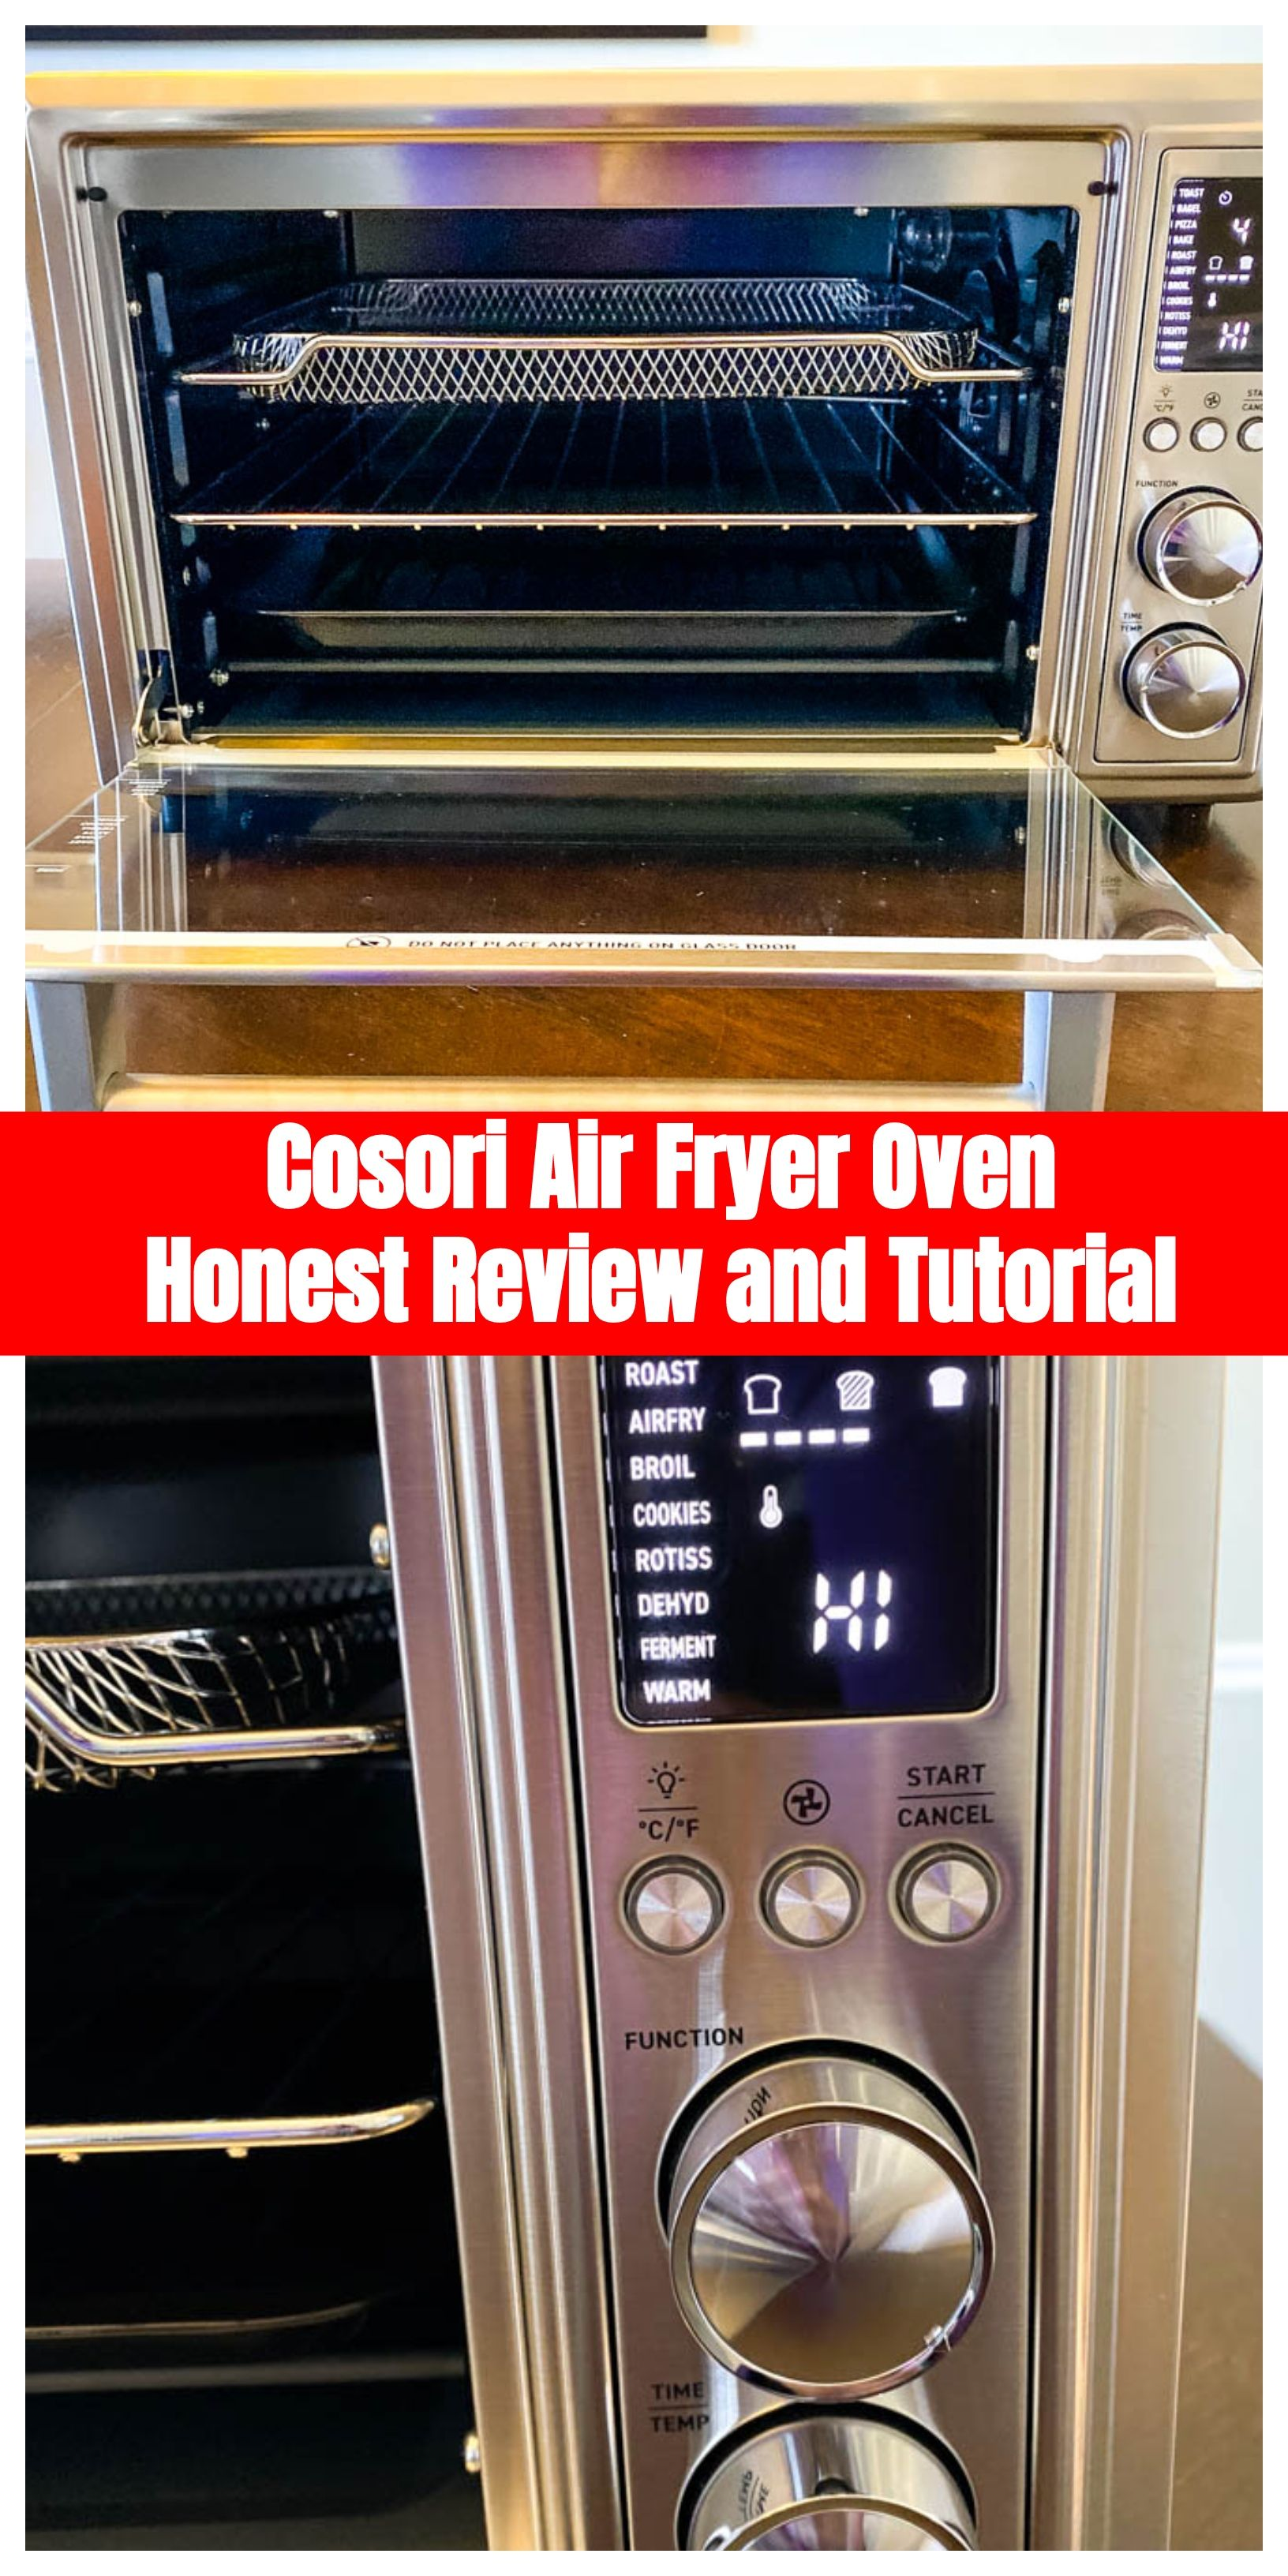 Cosori Air Fryer Toaster Oven Honest Review Outlines The Best Features And Specifications Of The 30l 1800w Oven Air Fryer Oven Recipes Air Fryer Toaster Oven